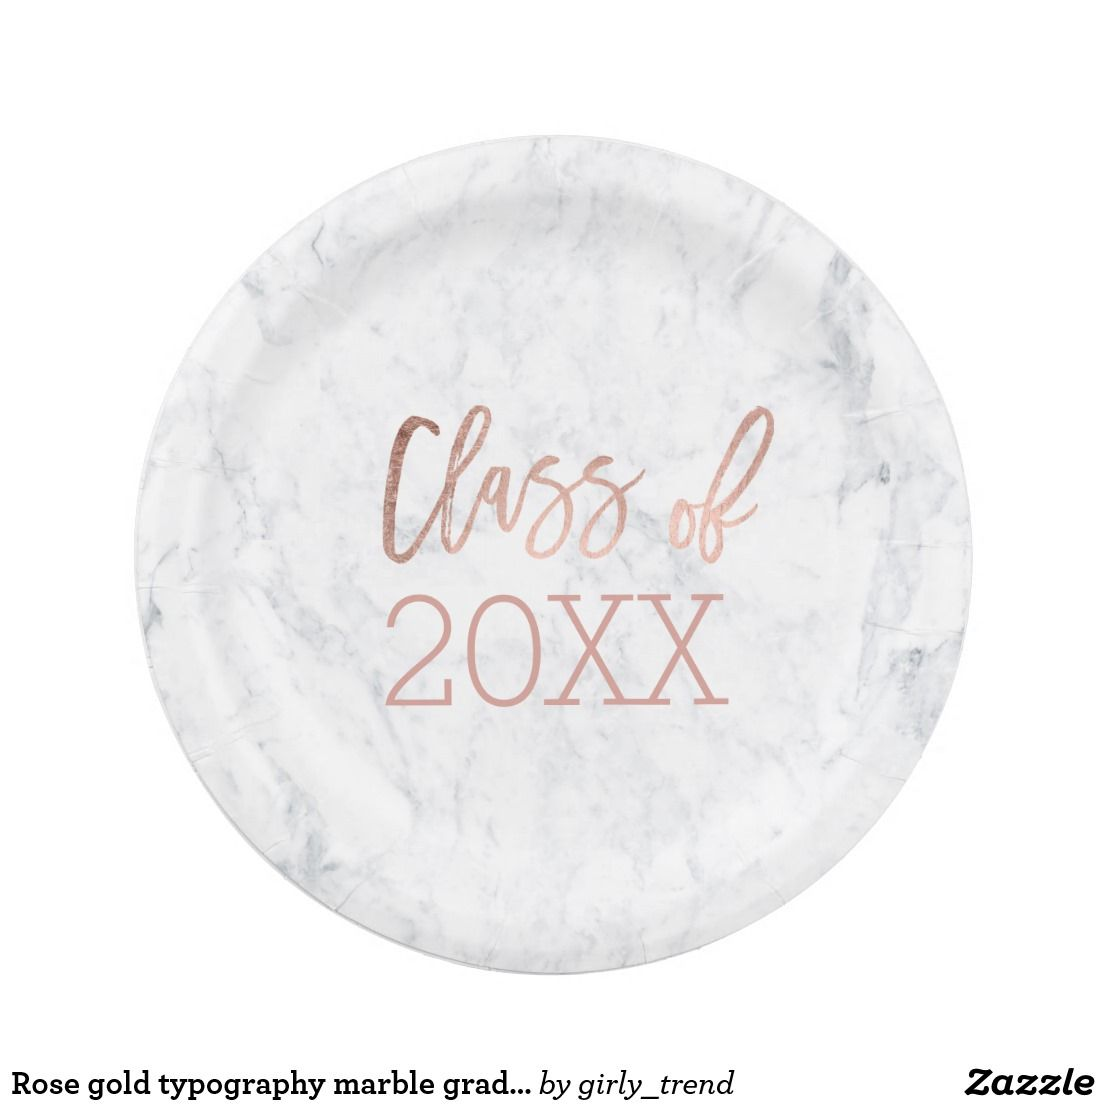 Rose gold typography marble graduation paper plate Rose gold typography marble graduation class of 20xx party  sc 1 st  Pinterest & Rose gold typography marble graduation paper plate Rose gold ...